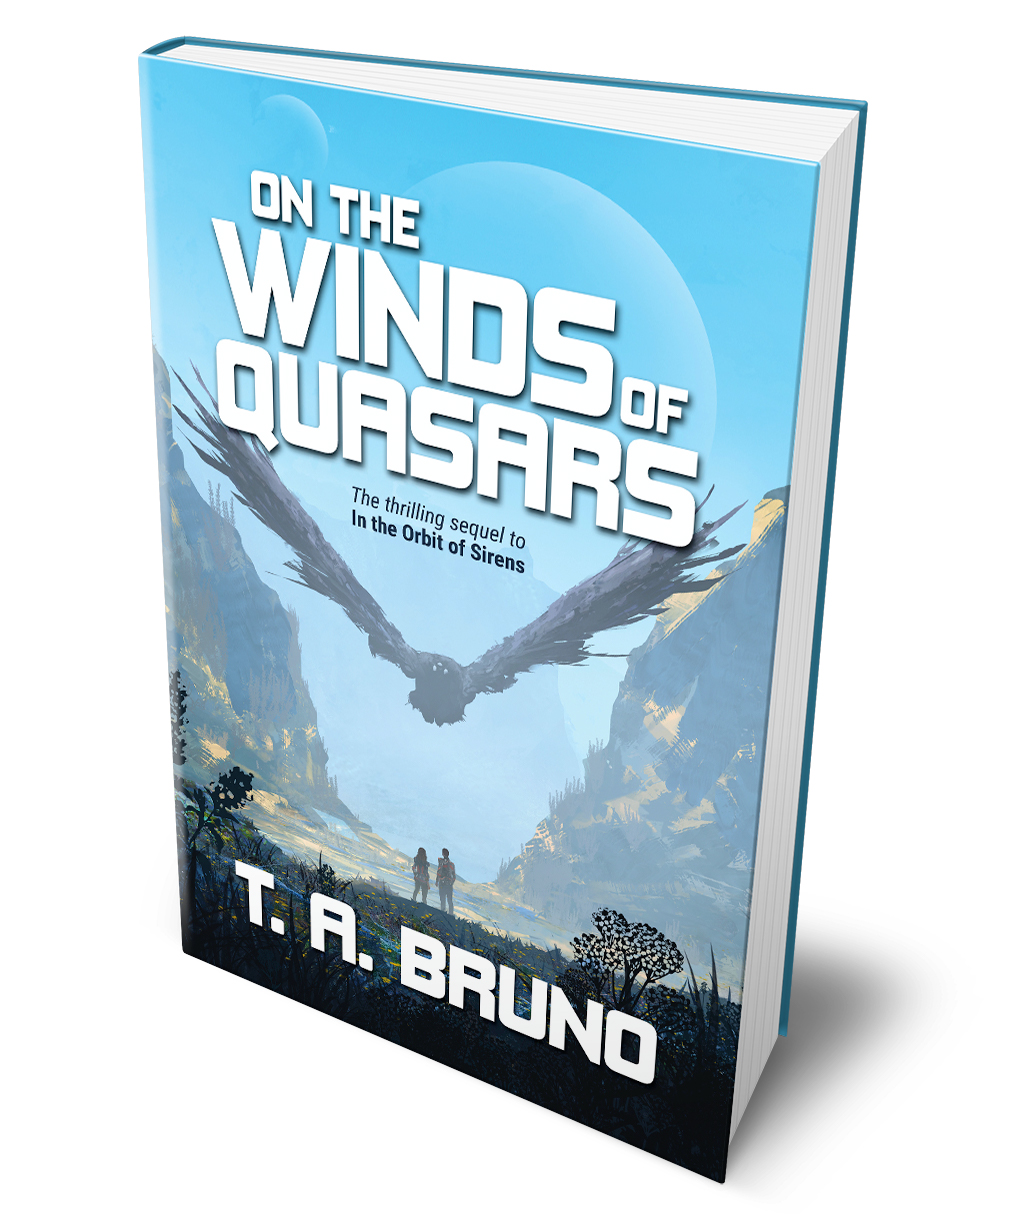 on-the-winds-of-quasars_bruno_mockup